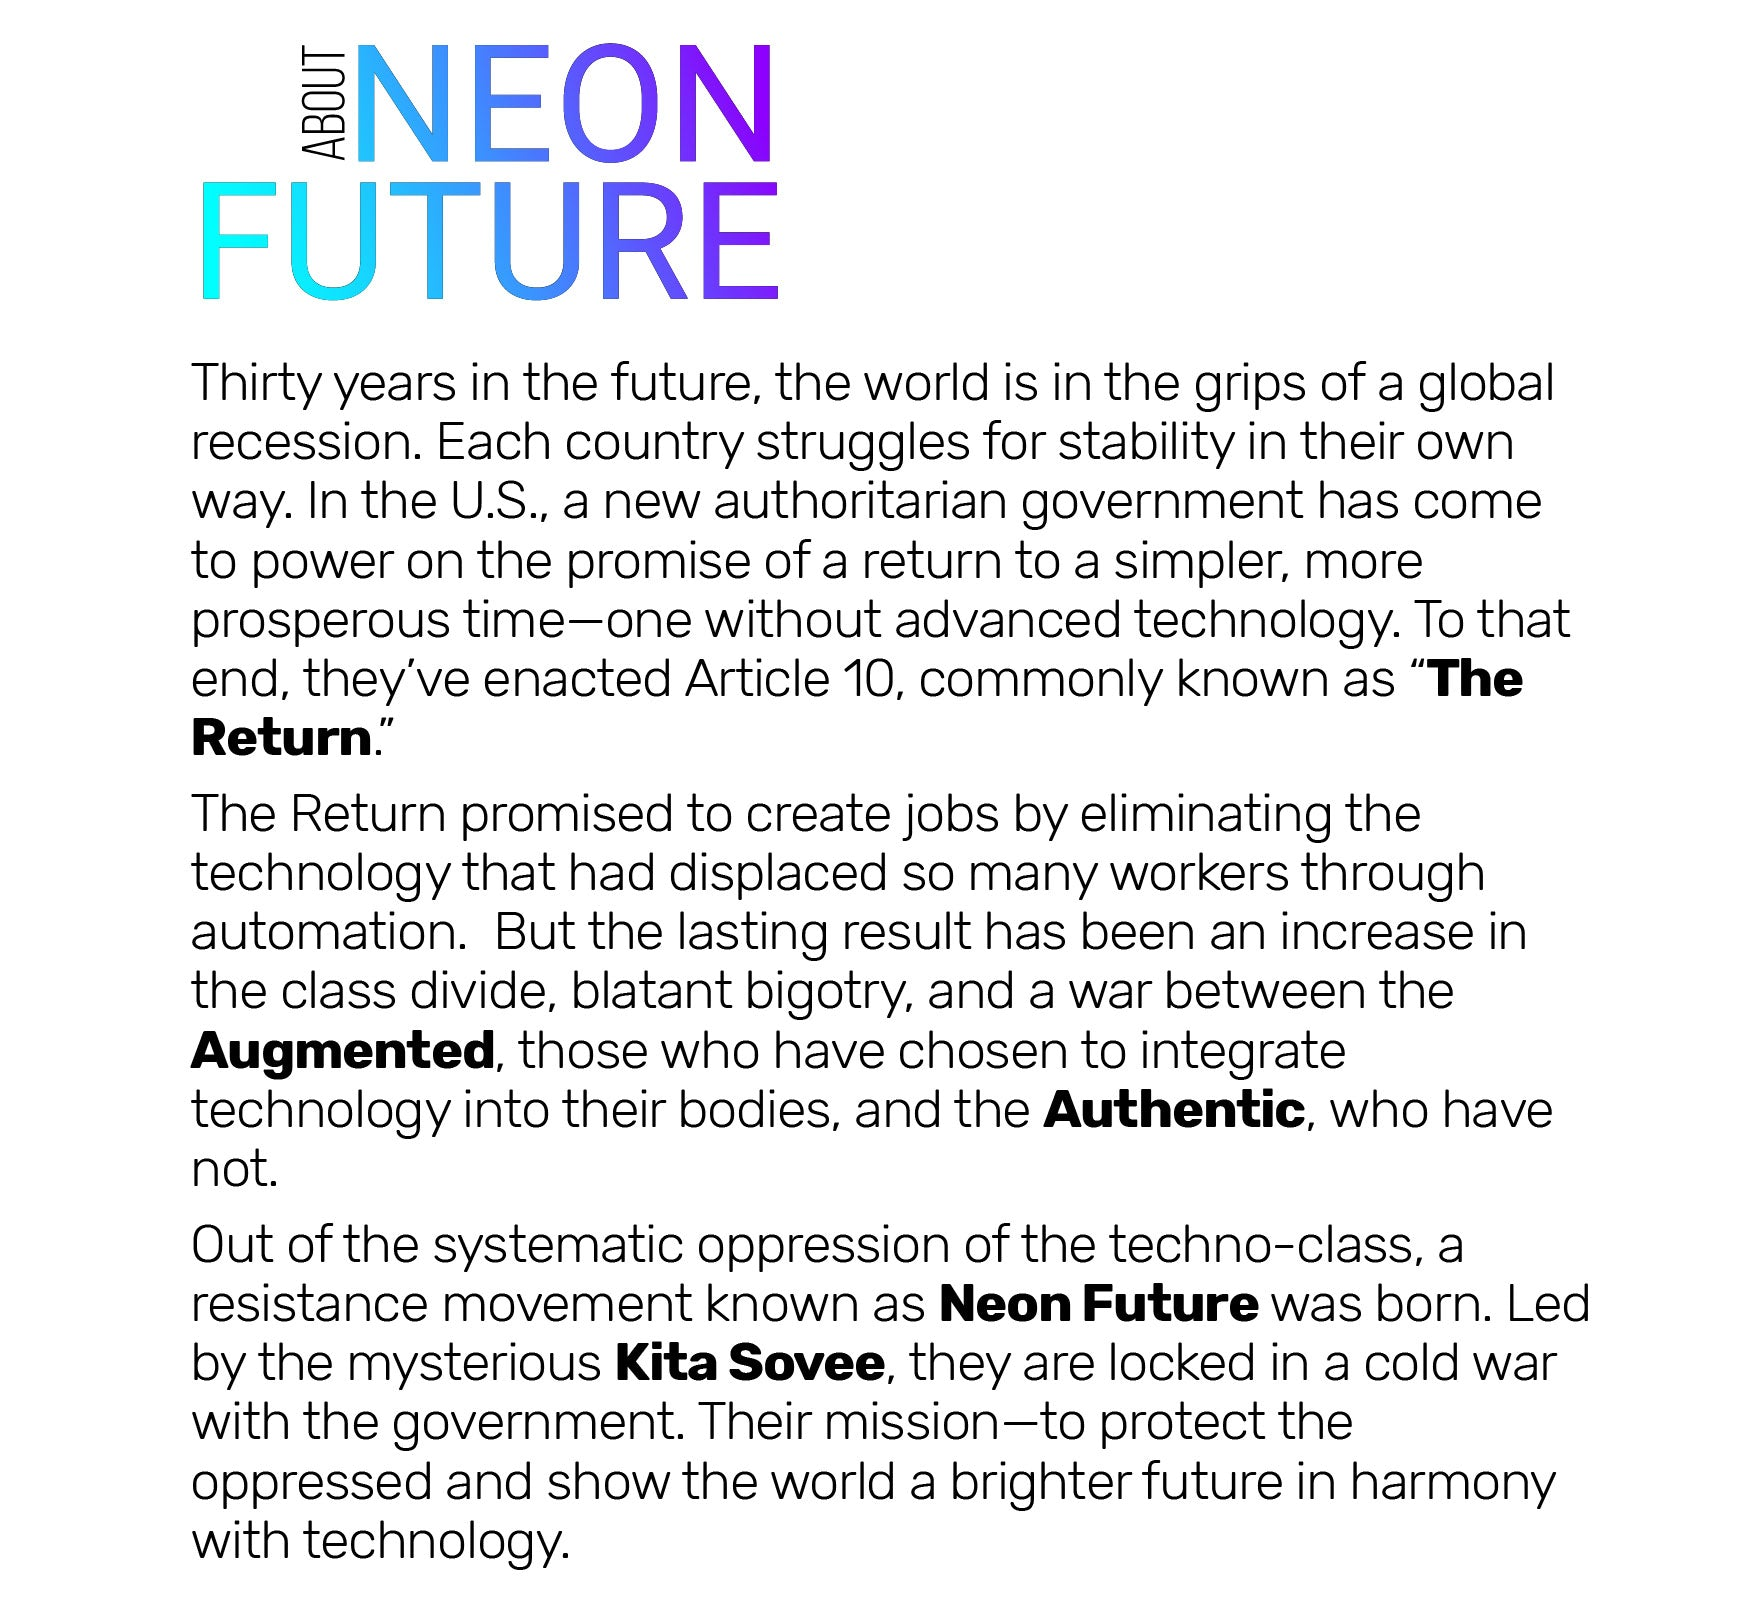 About Neon Future (Text)